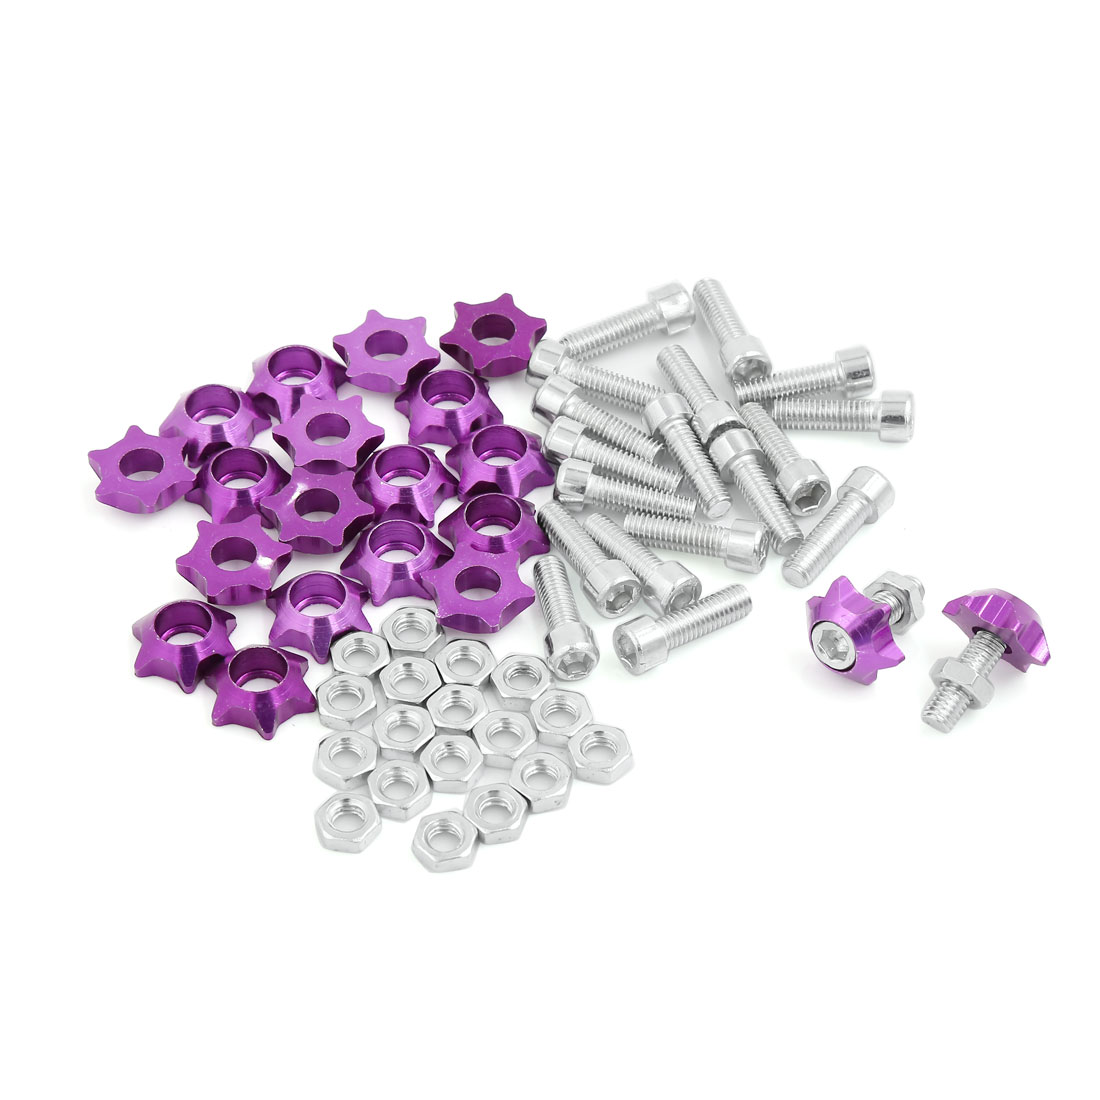 20 Pcs Purple Star Shape Car License Plate Frame Screw Decoration 25mm Long